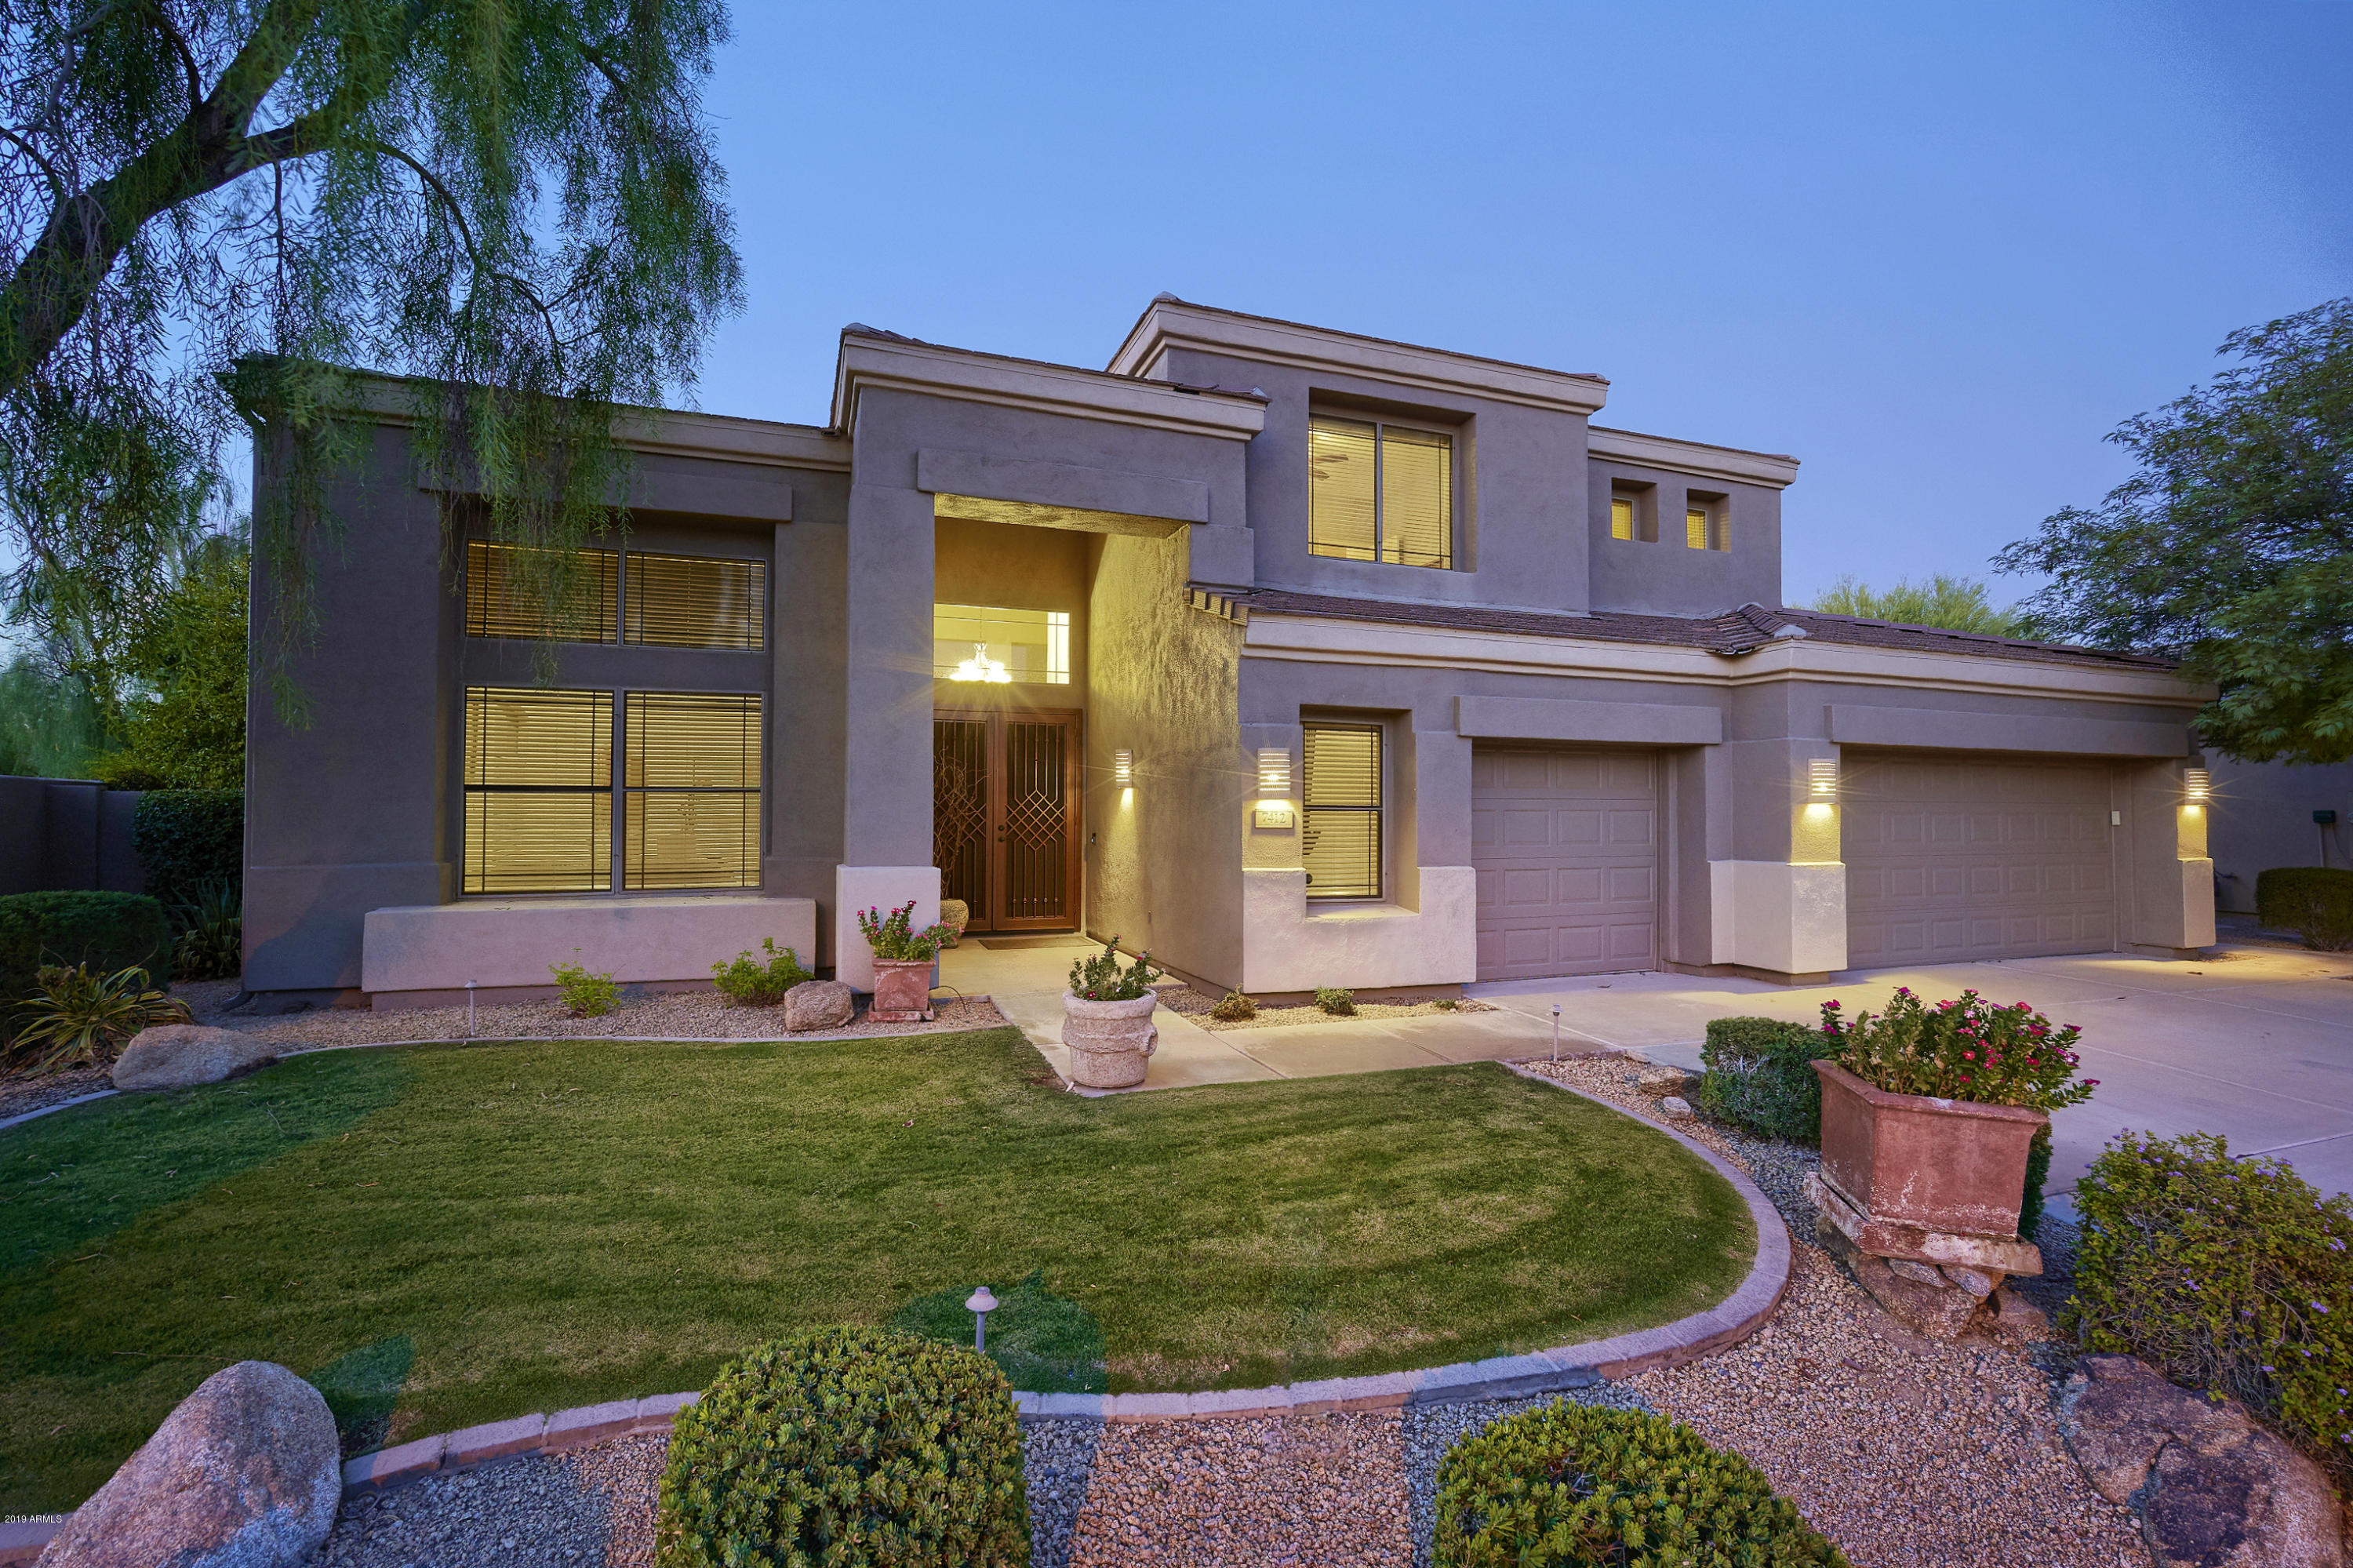 Photo of 7412 E QUILL Lane, Scottsdale, AZ 85255